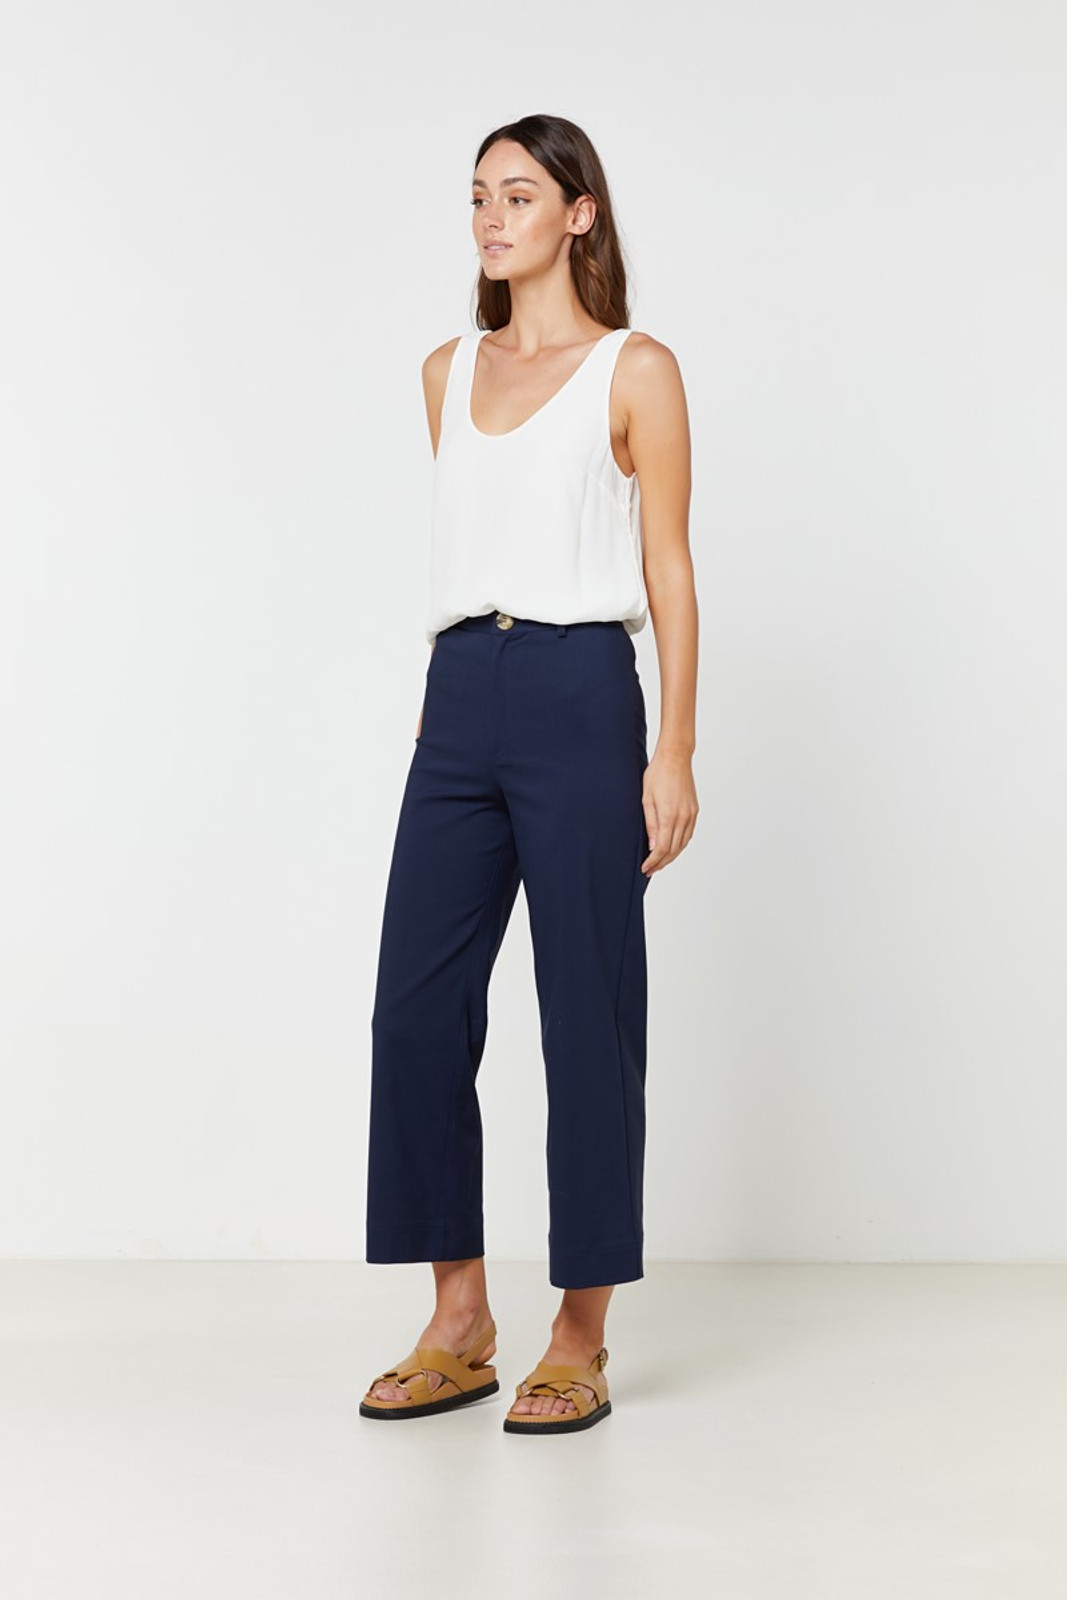 Elka Collective Ingrid Pant Navy  2